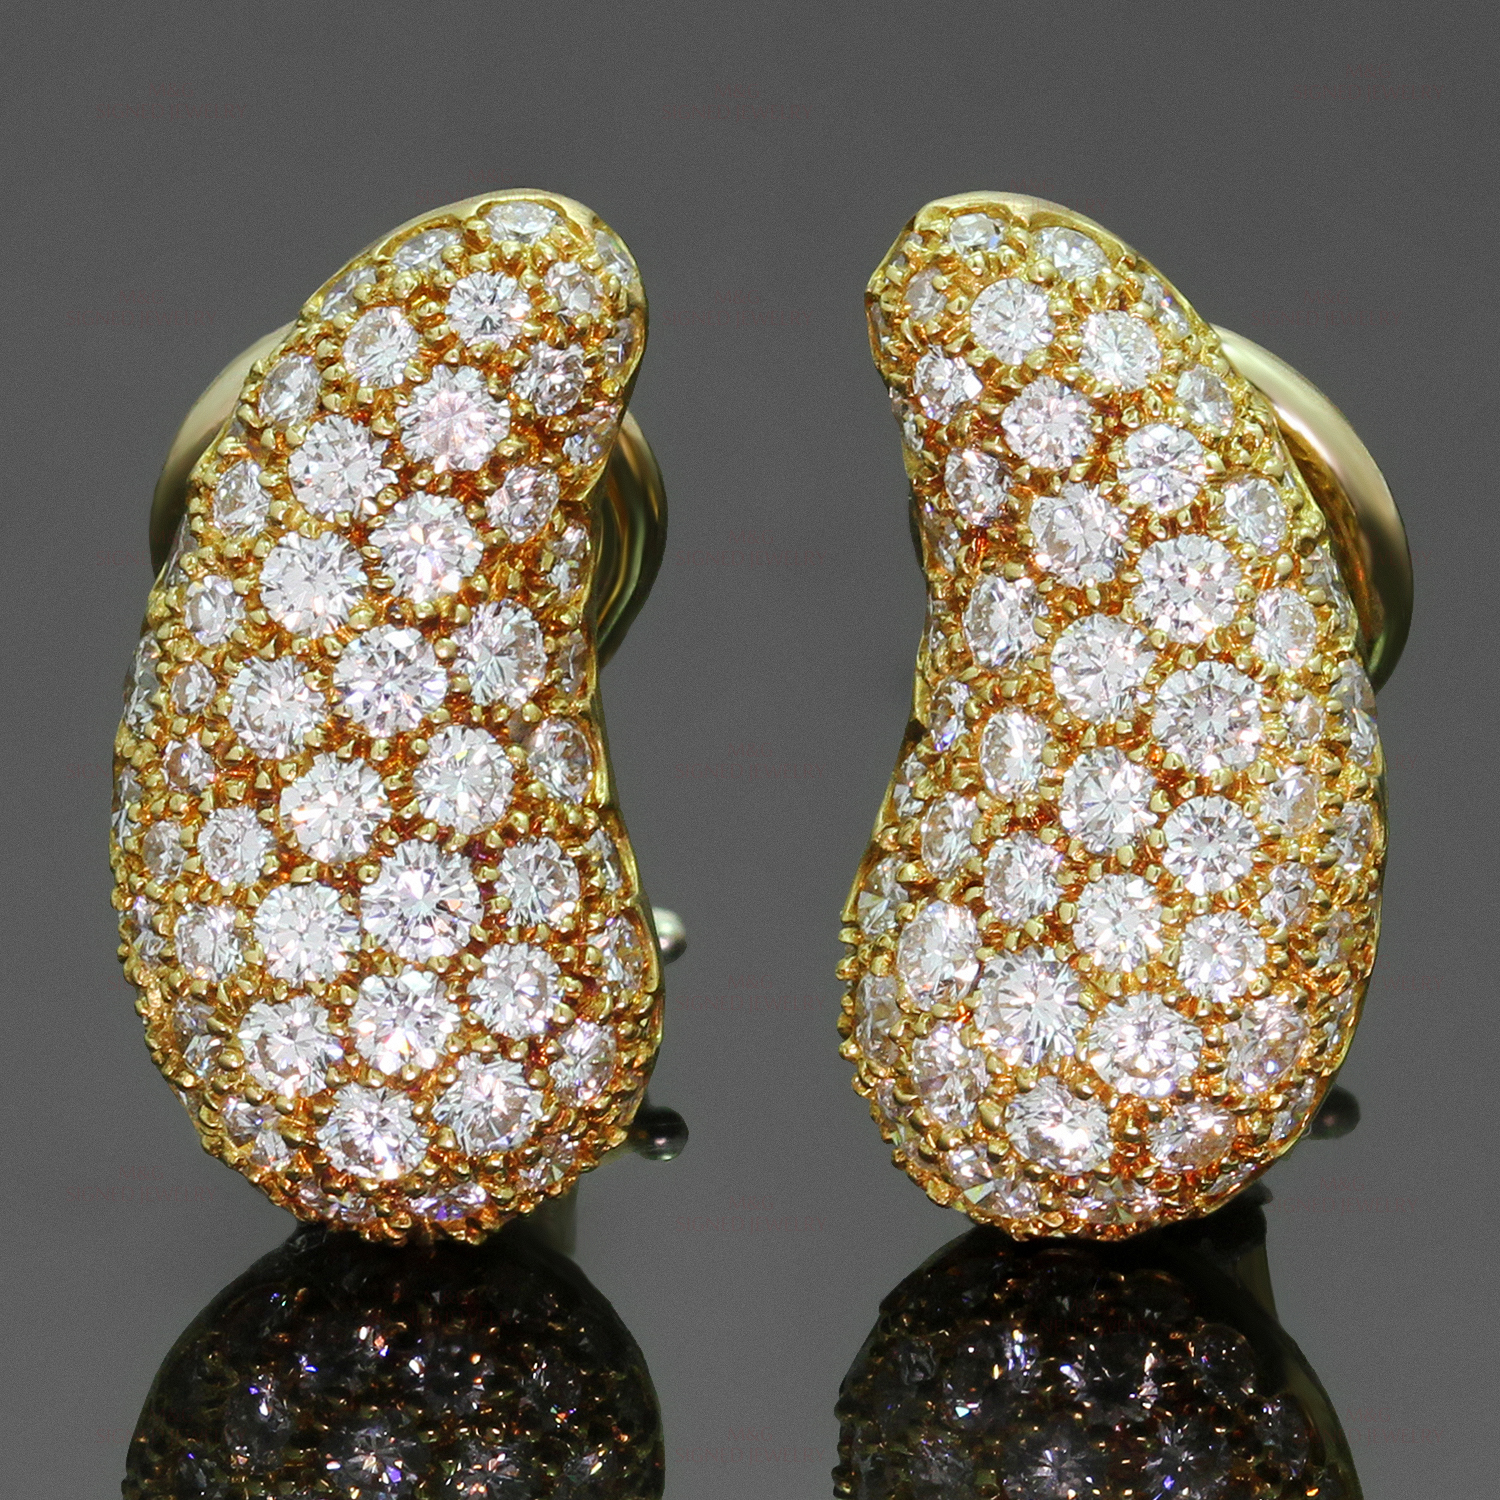 TIFFANY & CO. Elsa Peretti Diamond 18k Yellow Gold Clip-on Bean Earrings